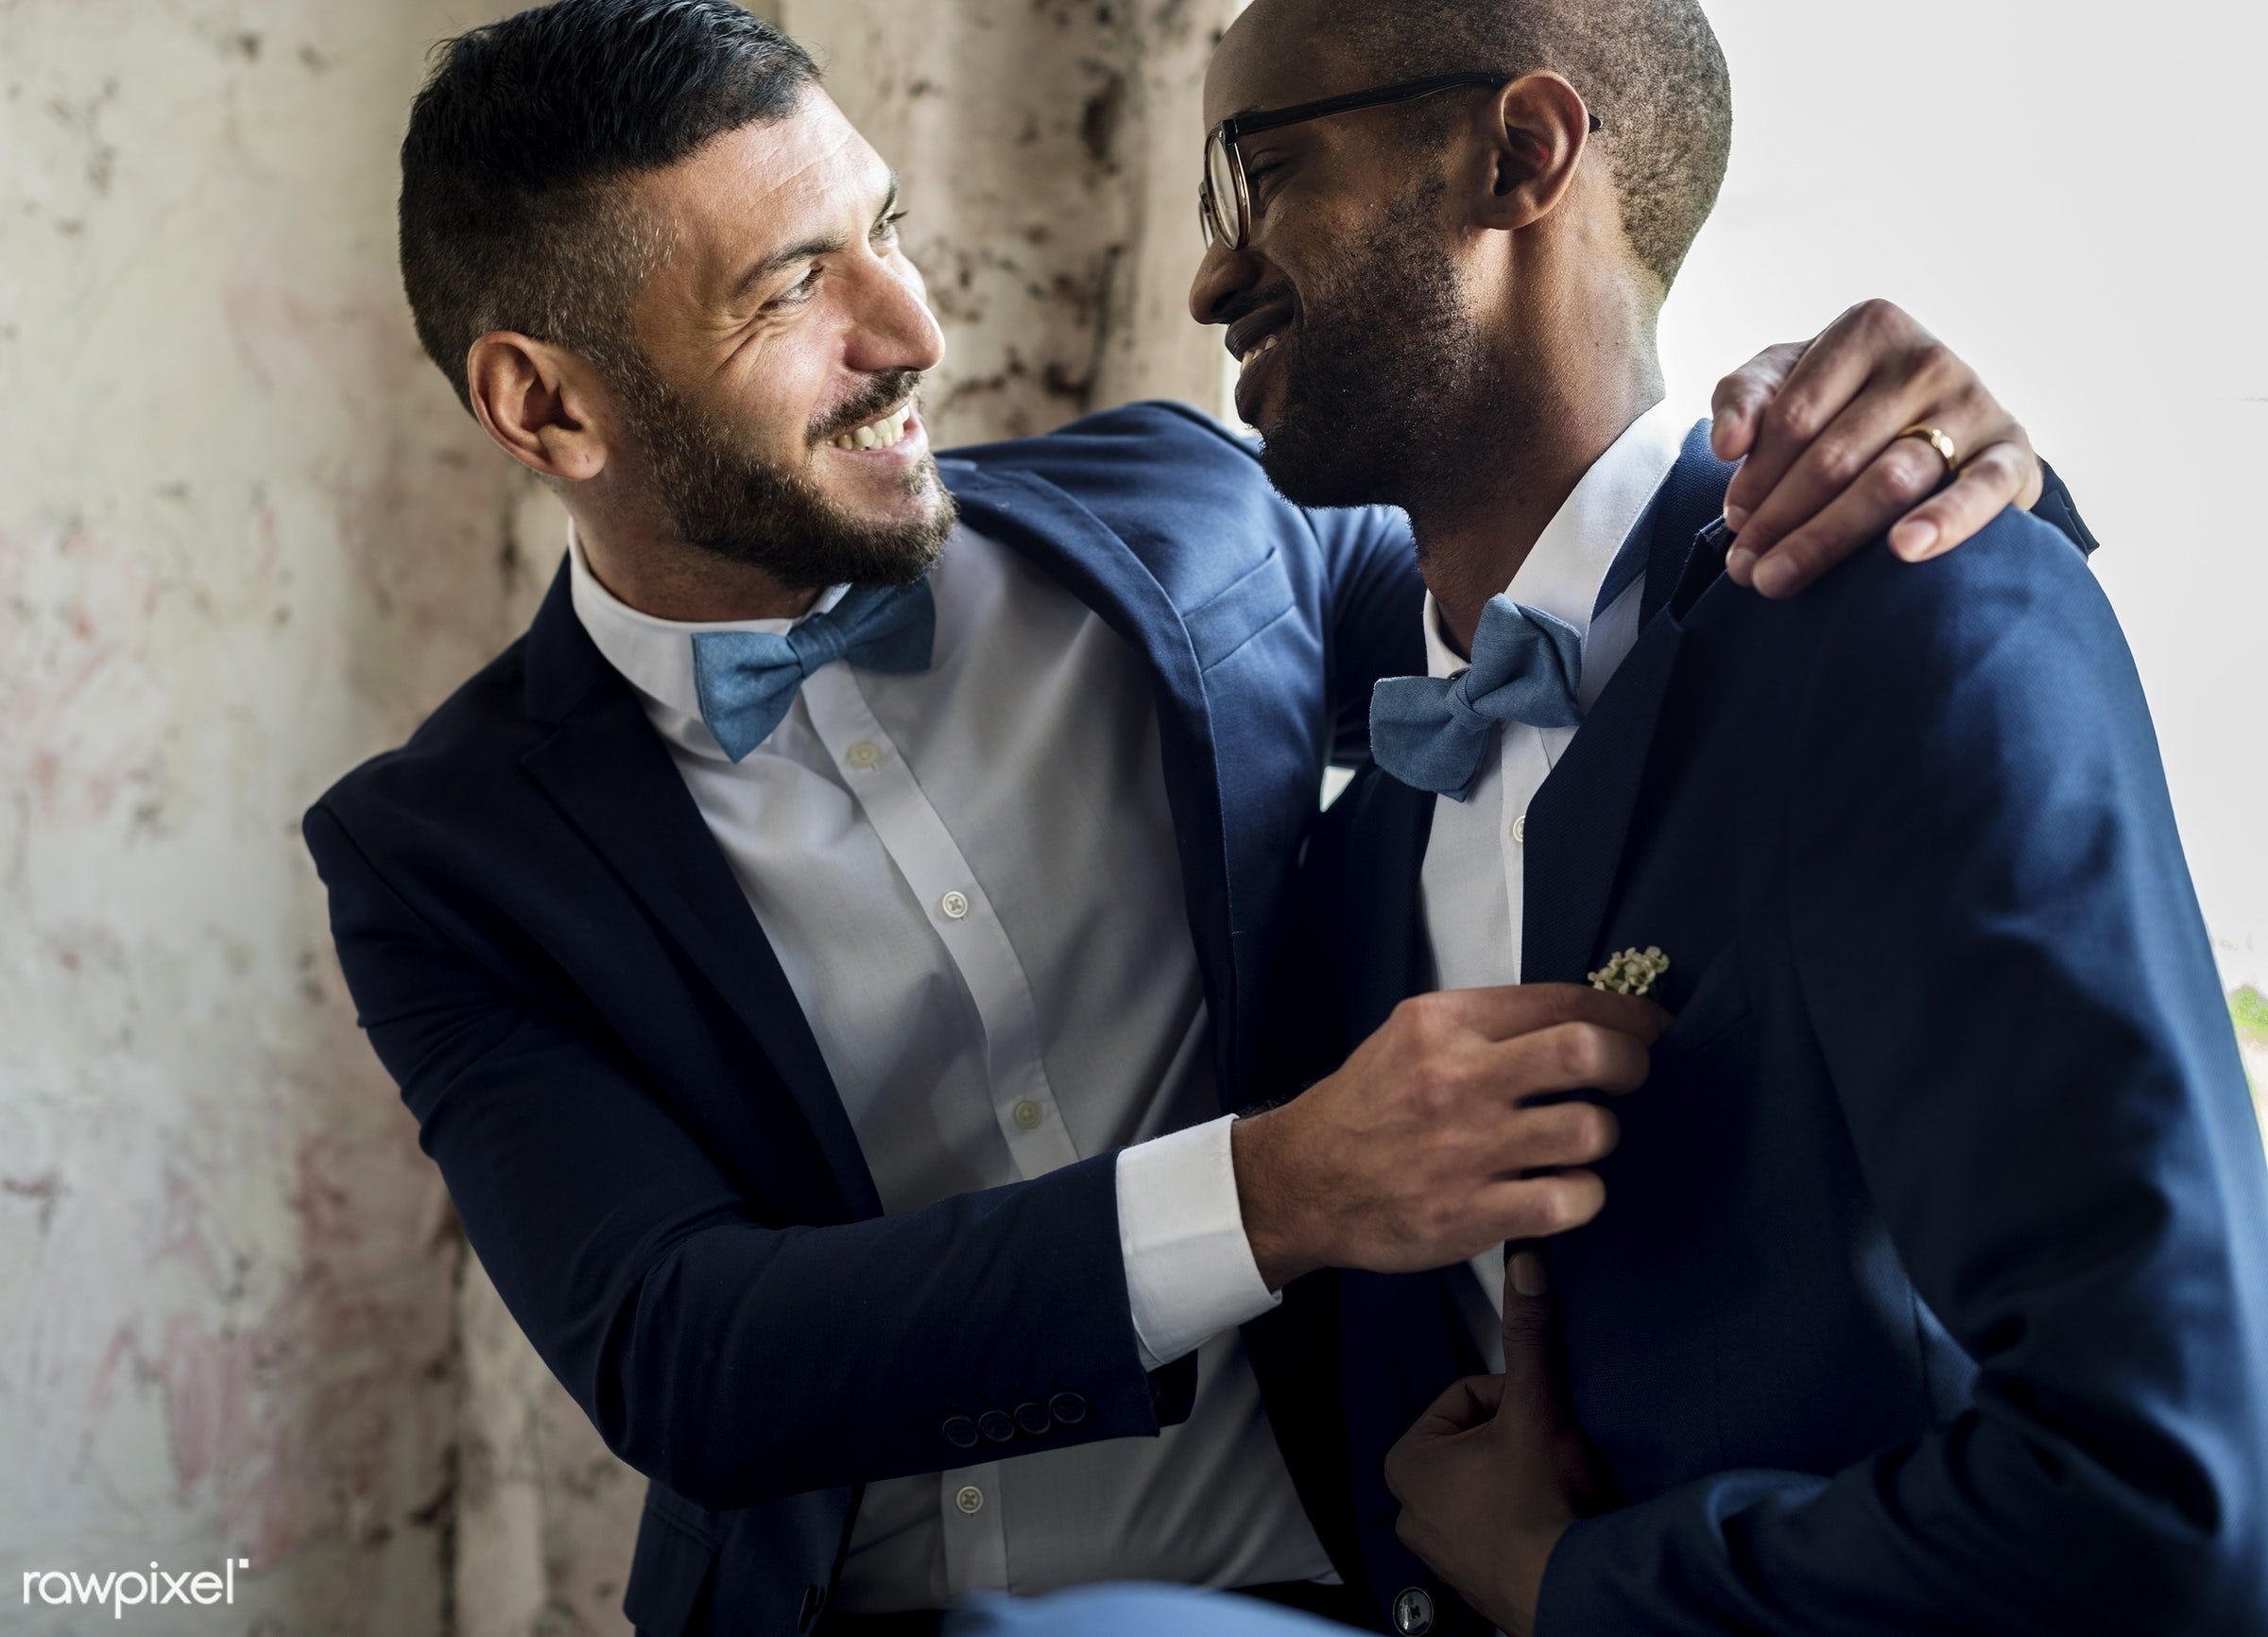 gay couple, african descent, occasion, ceremony, together, lgbt, caucasian, love, two, wedding, banquet, men, celebration